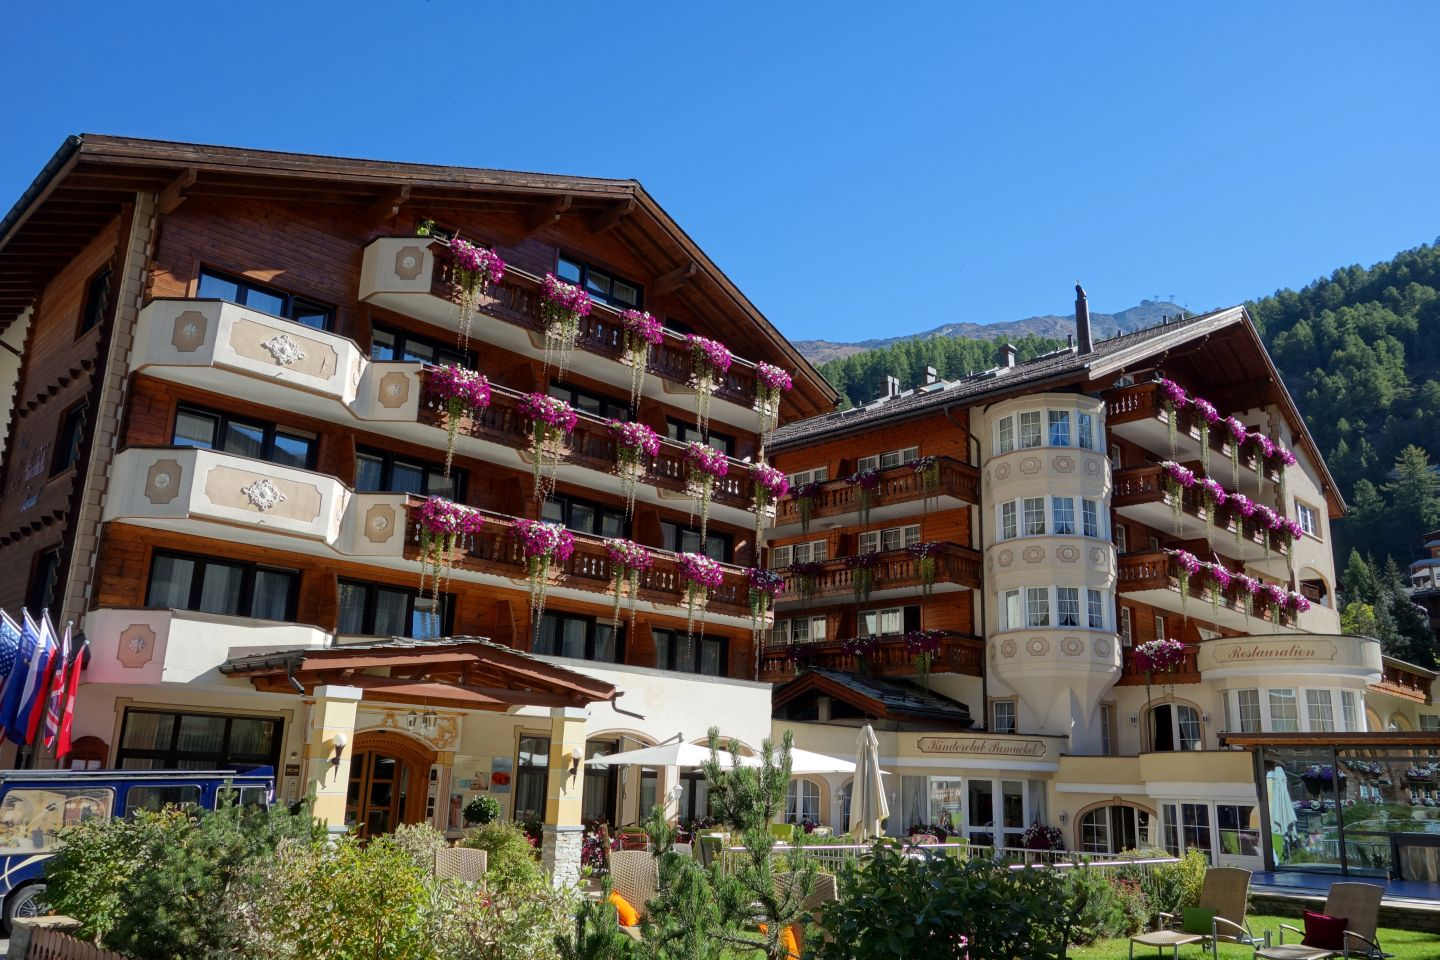 Swiss hotels and flowers